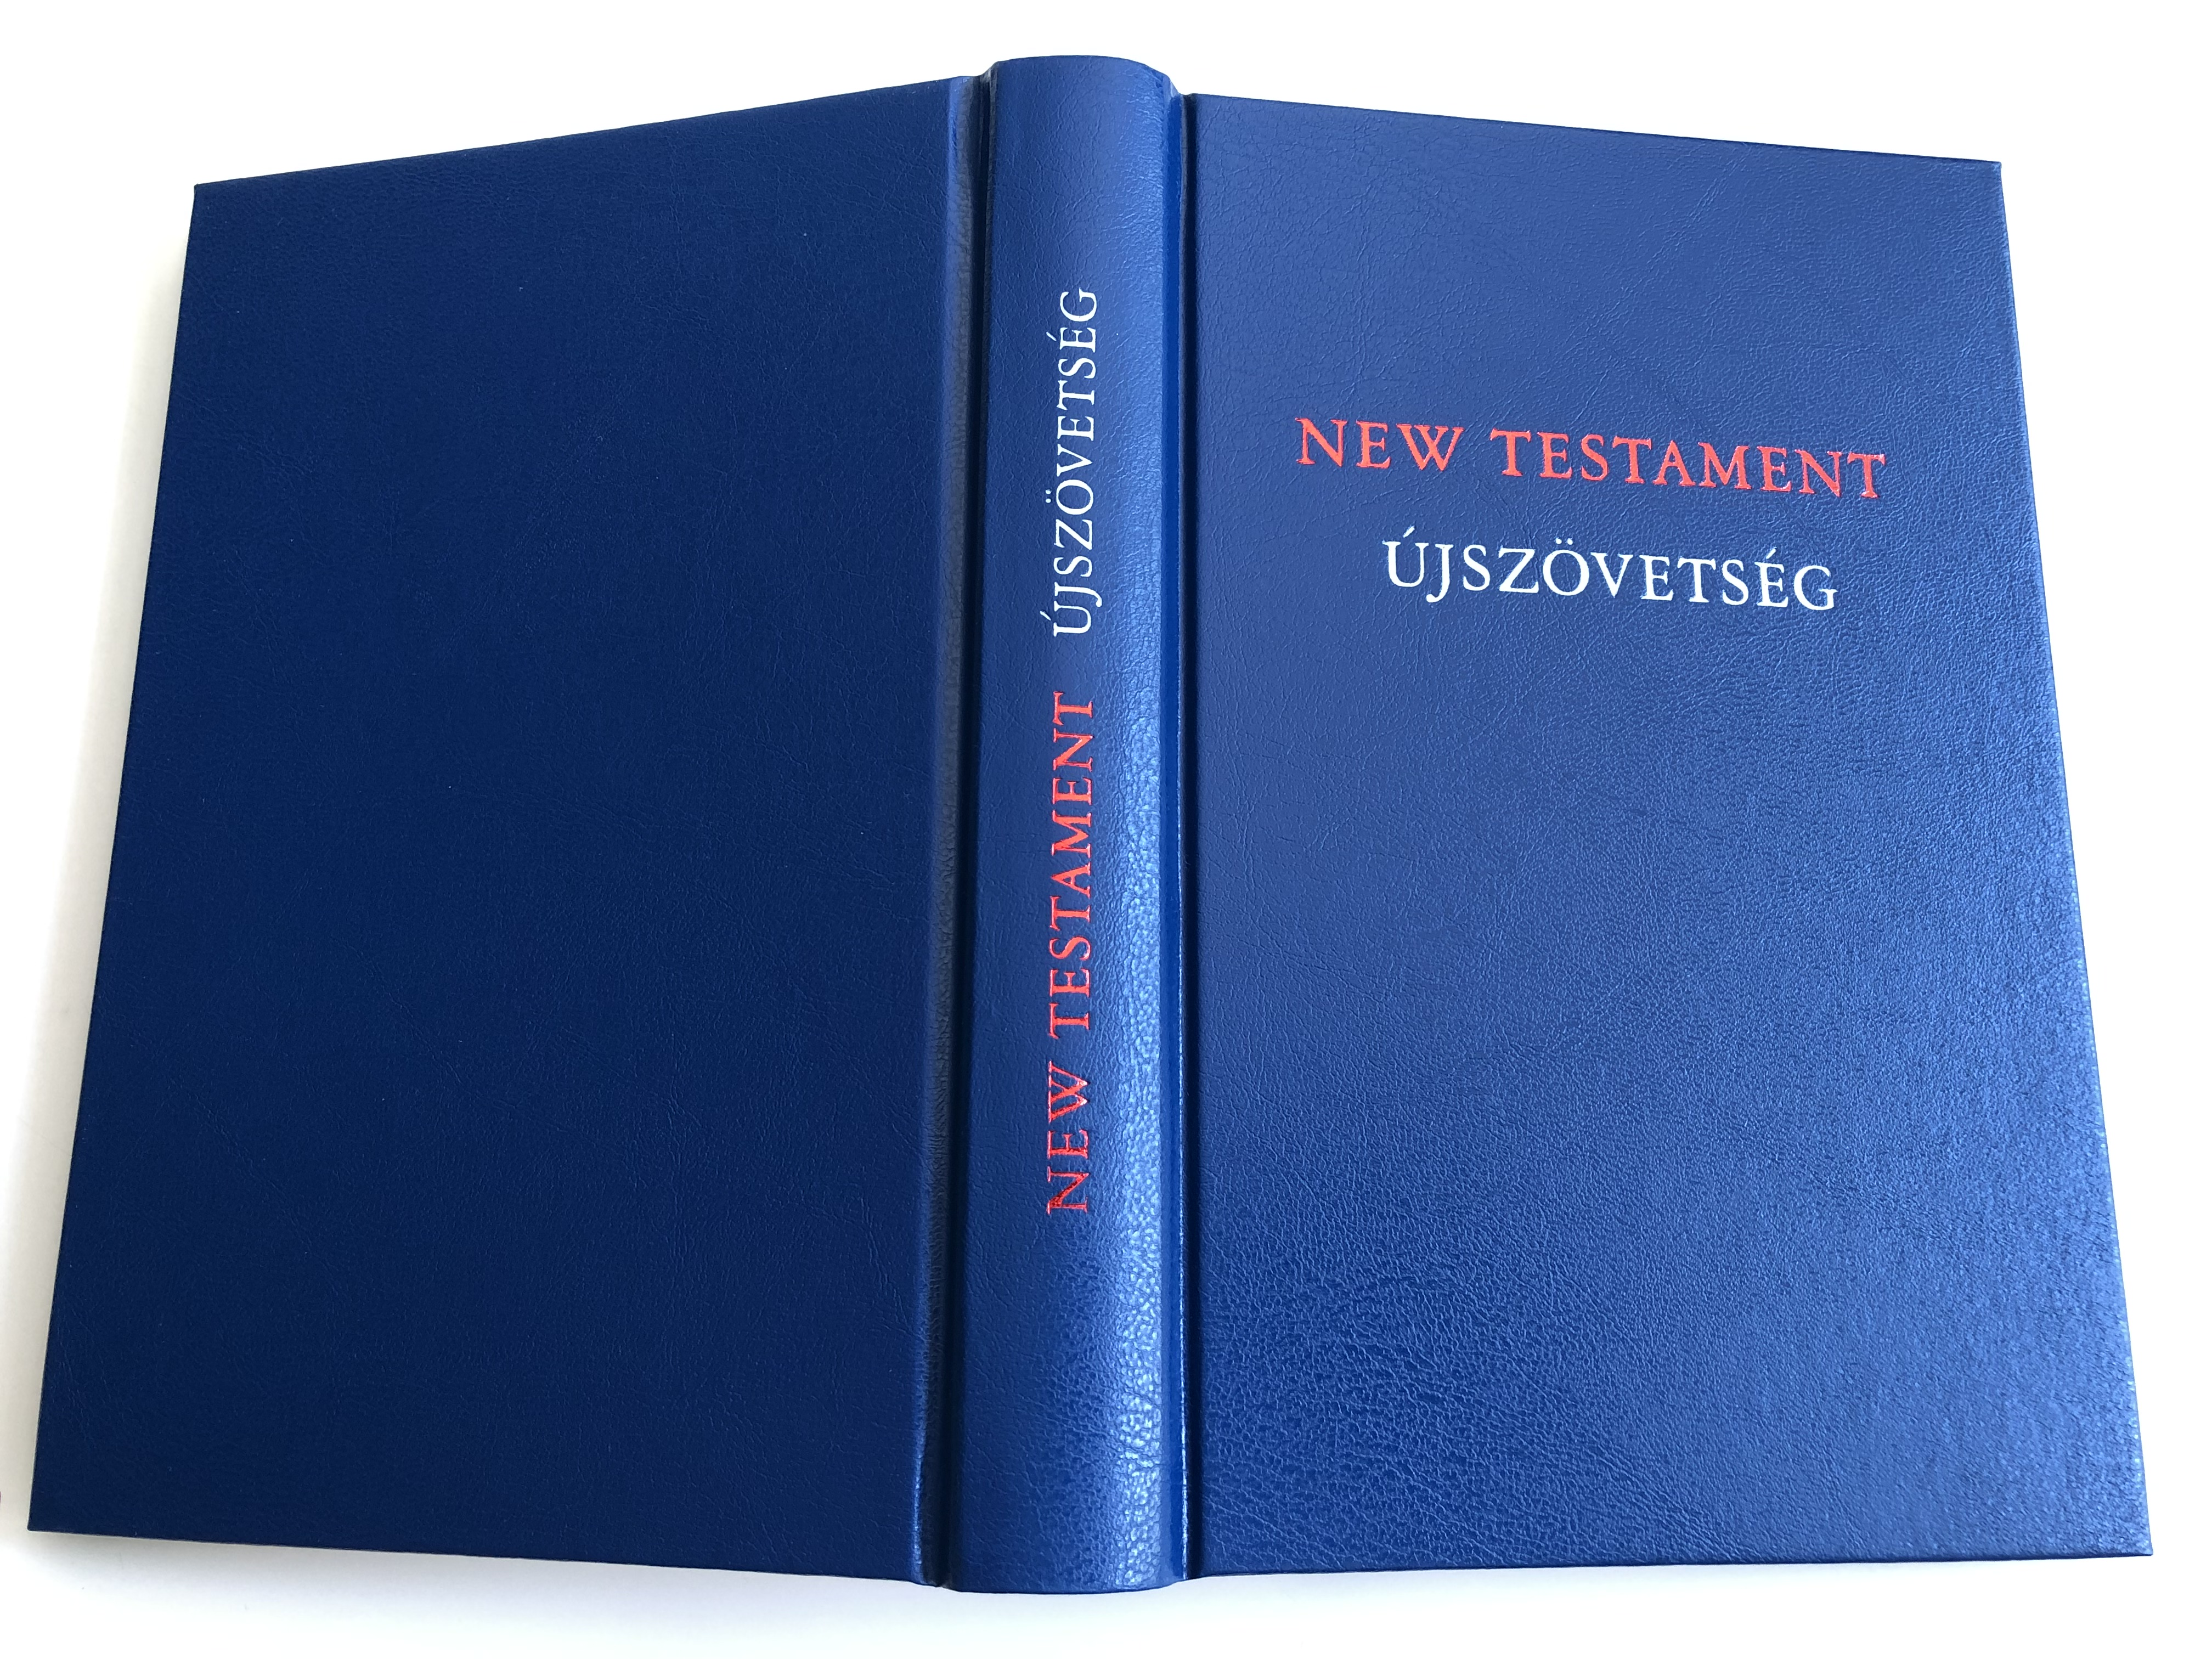 new-testament-gnt-jsz-vets-g-r-f-english-hungarian-bilingual-new-testament-parallel-column-text-hardcover-magyar-bibliat-rsulat-2019-14-.jpg